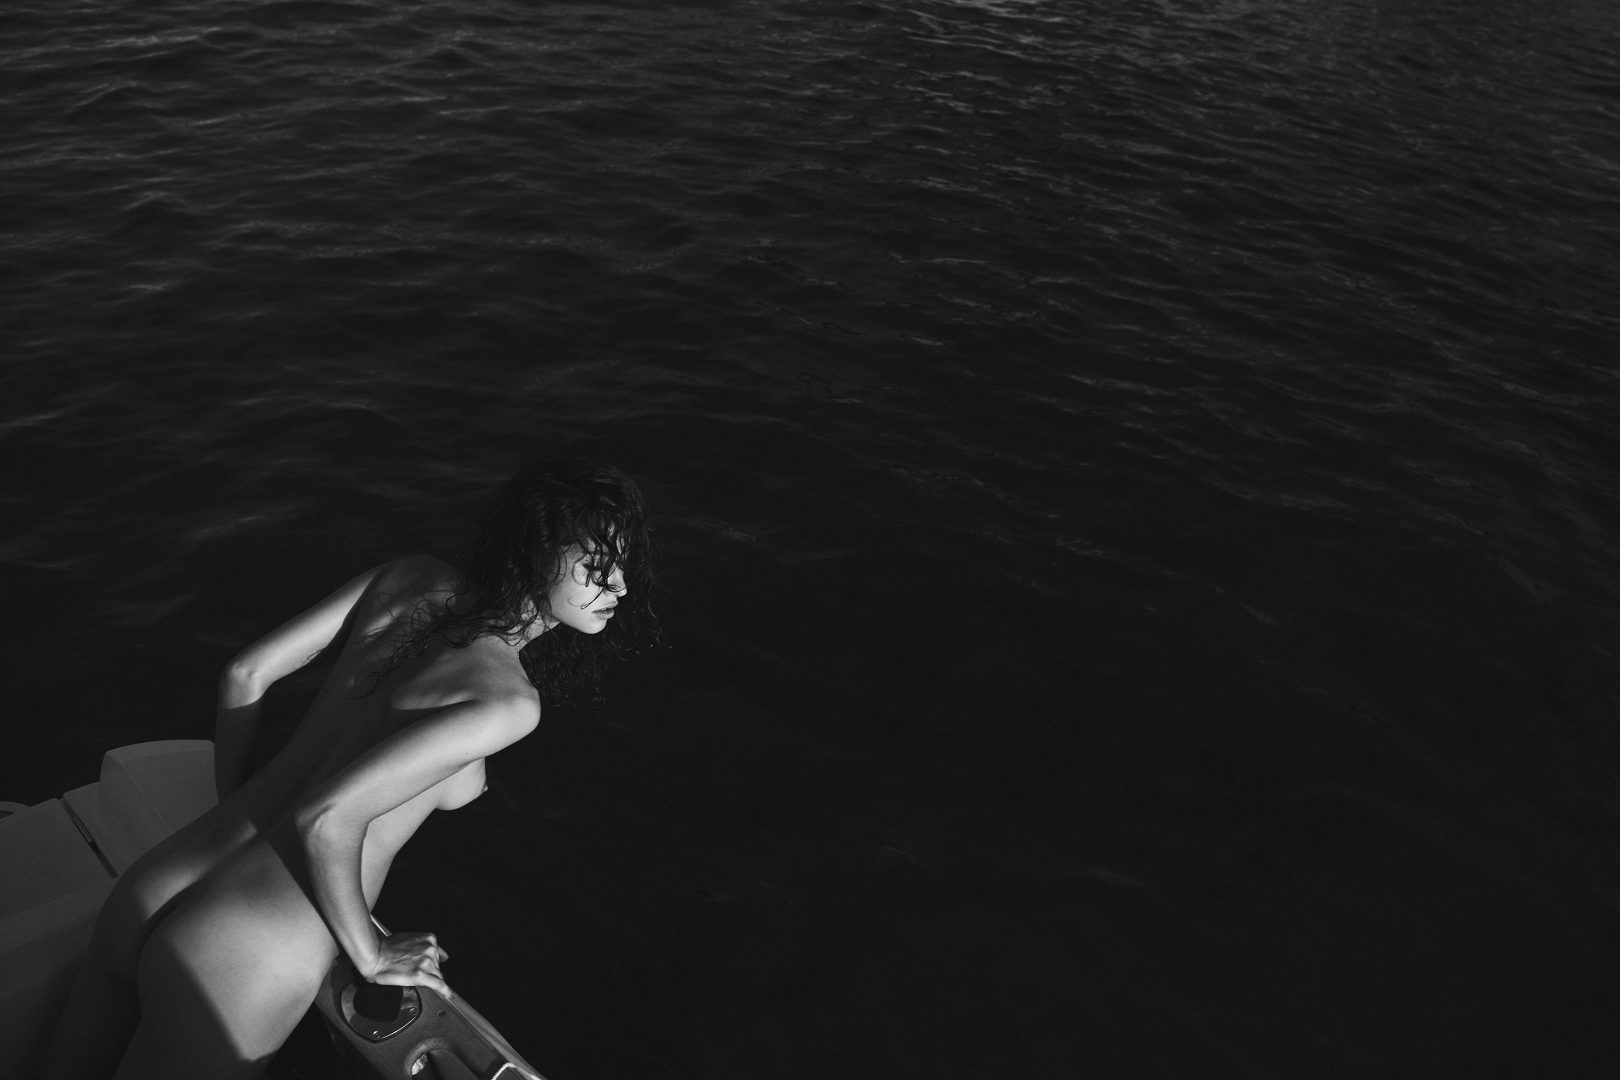 Naked woman on boat by stefan rappo